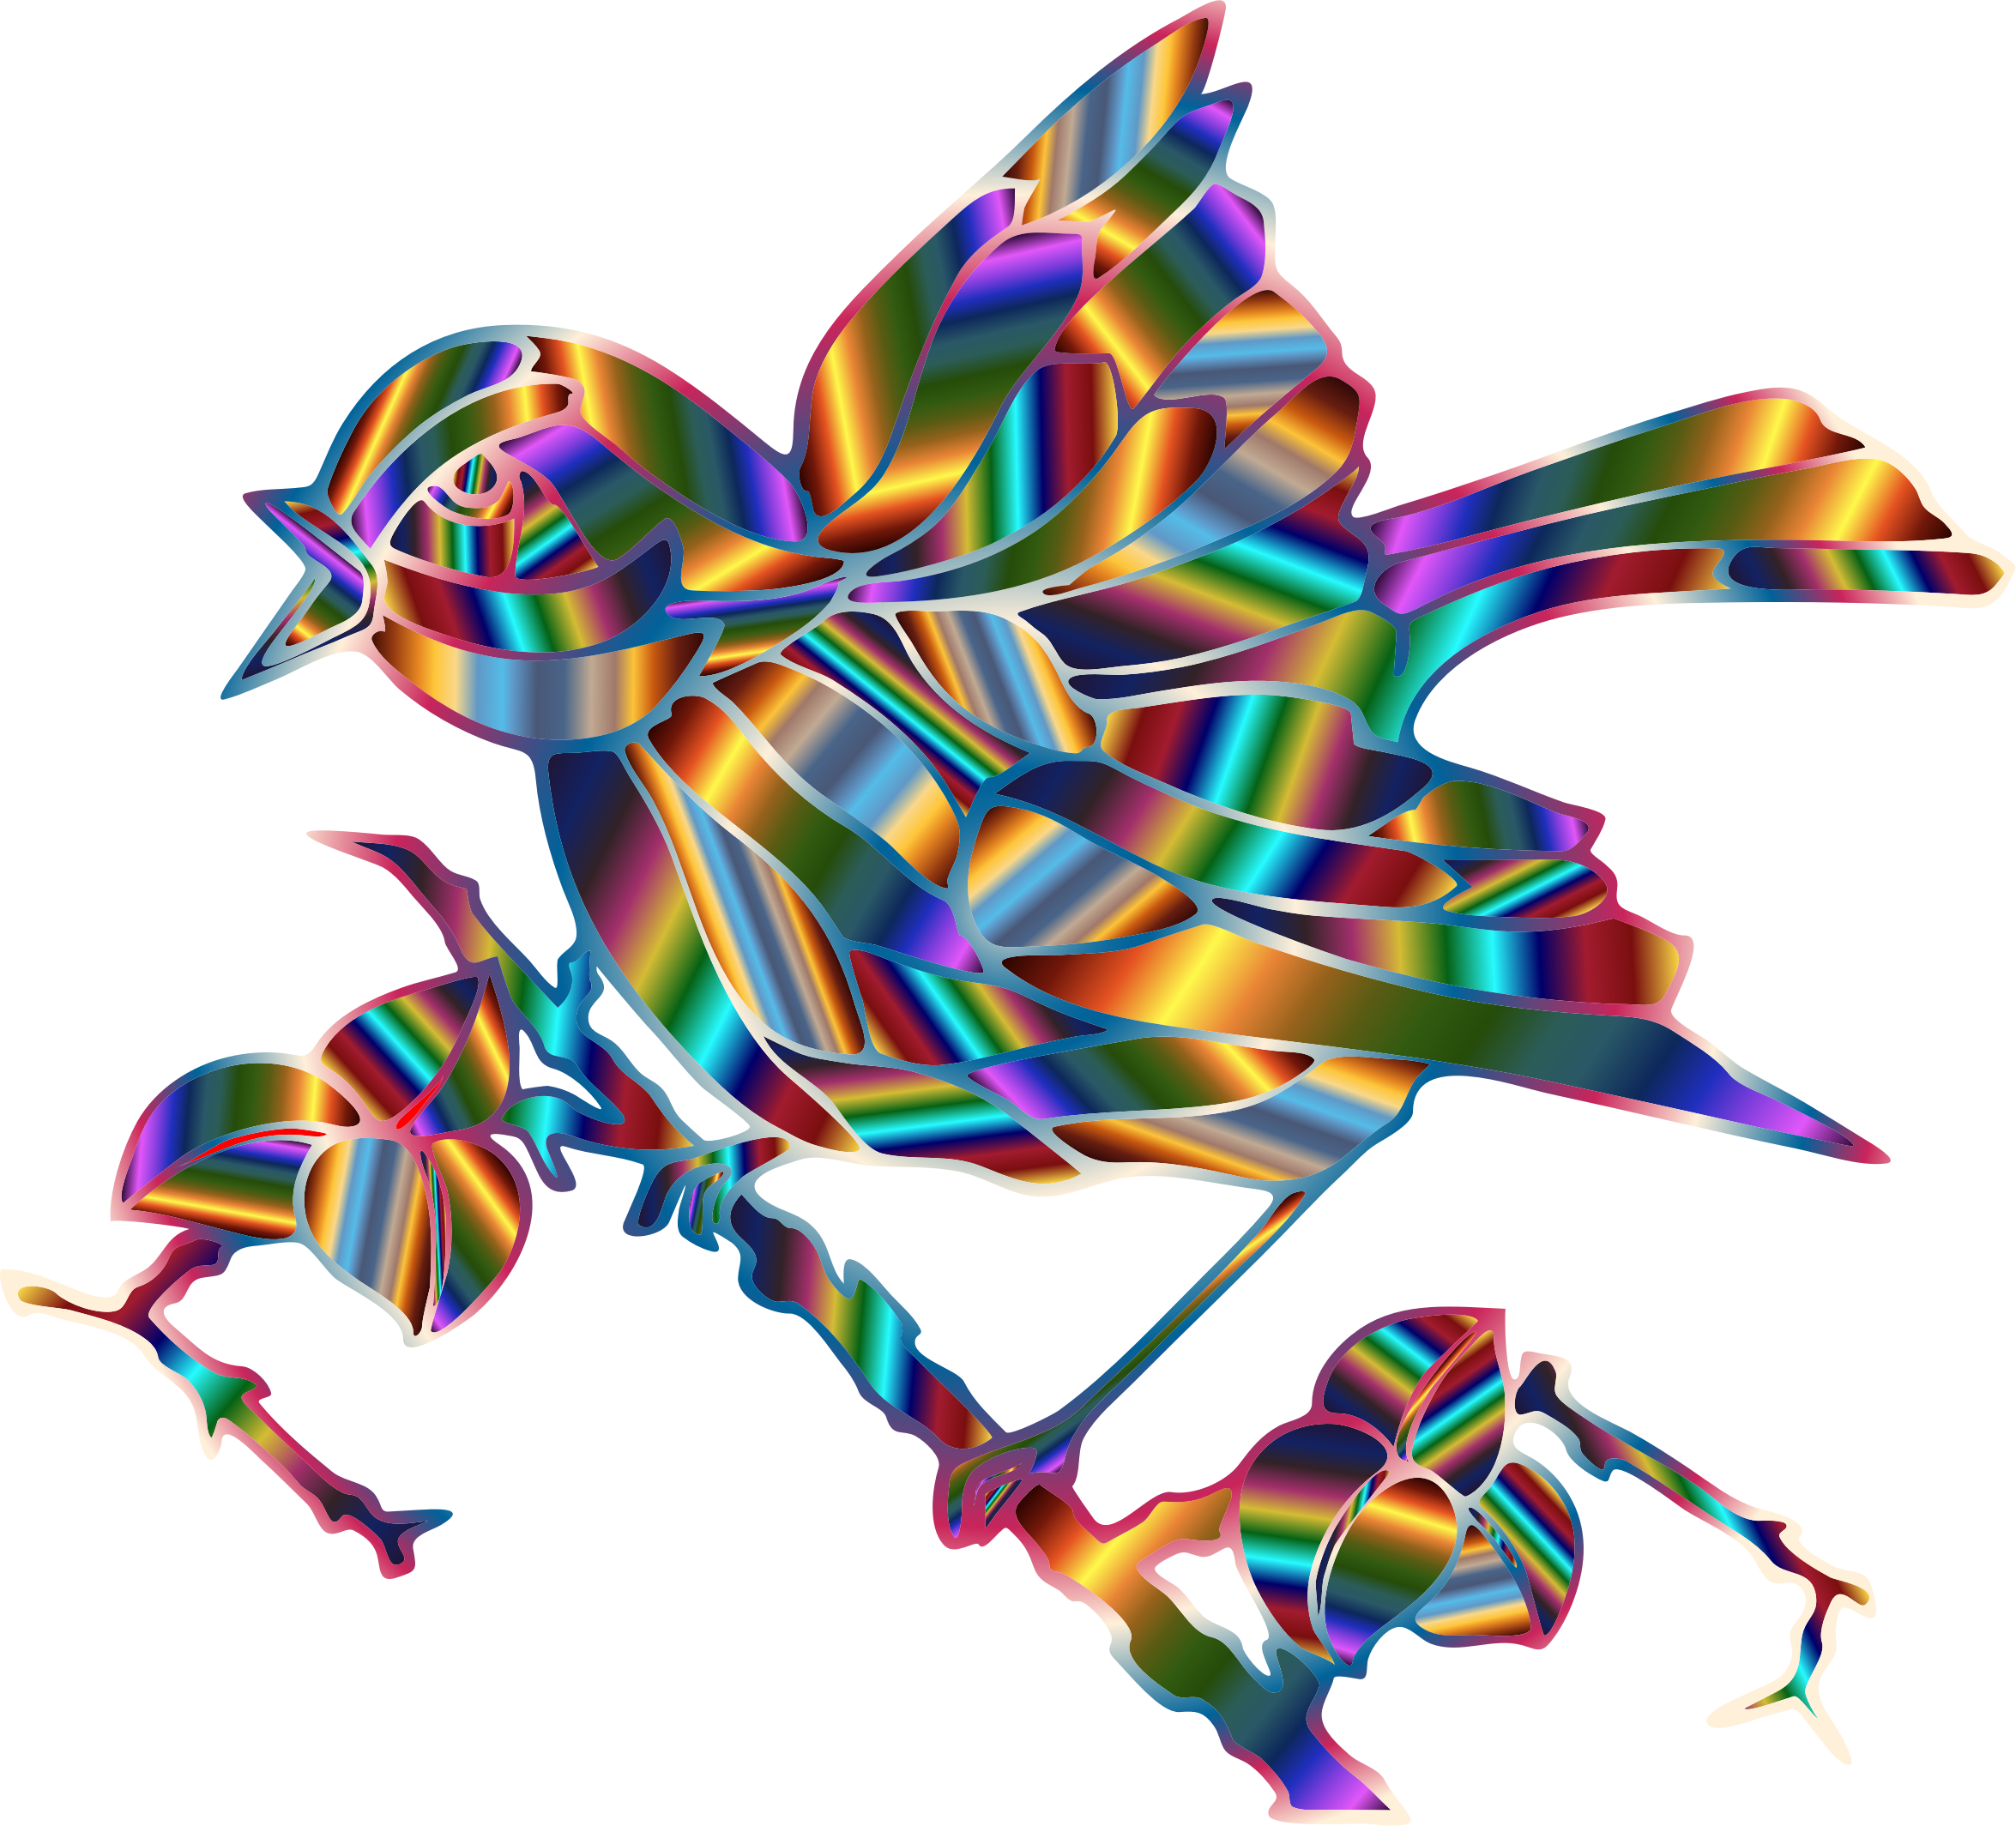 Prismatic Bird 3 by GDJ